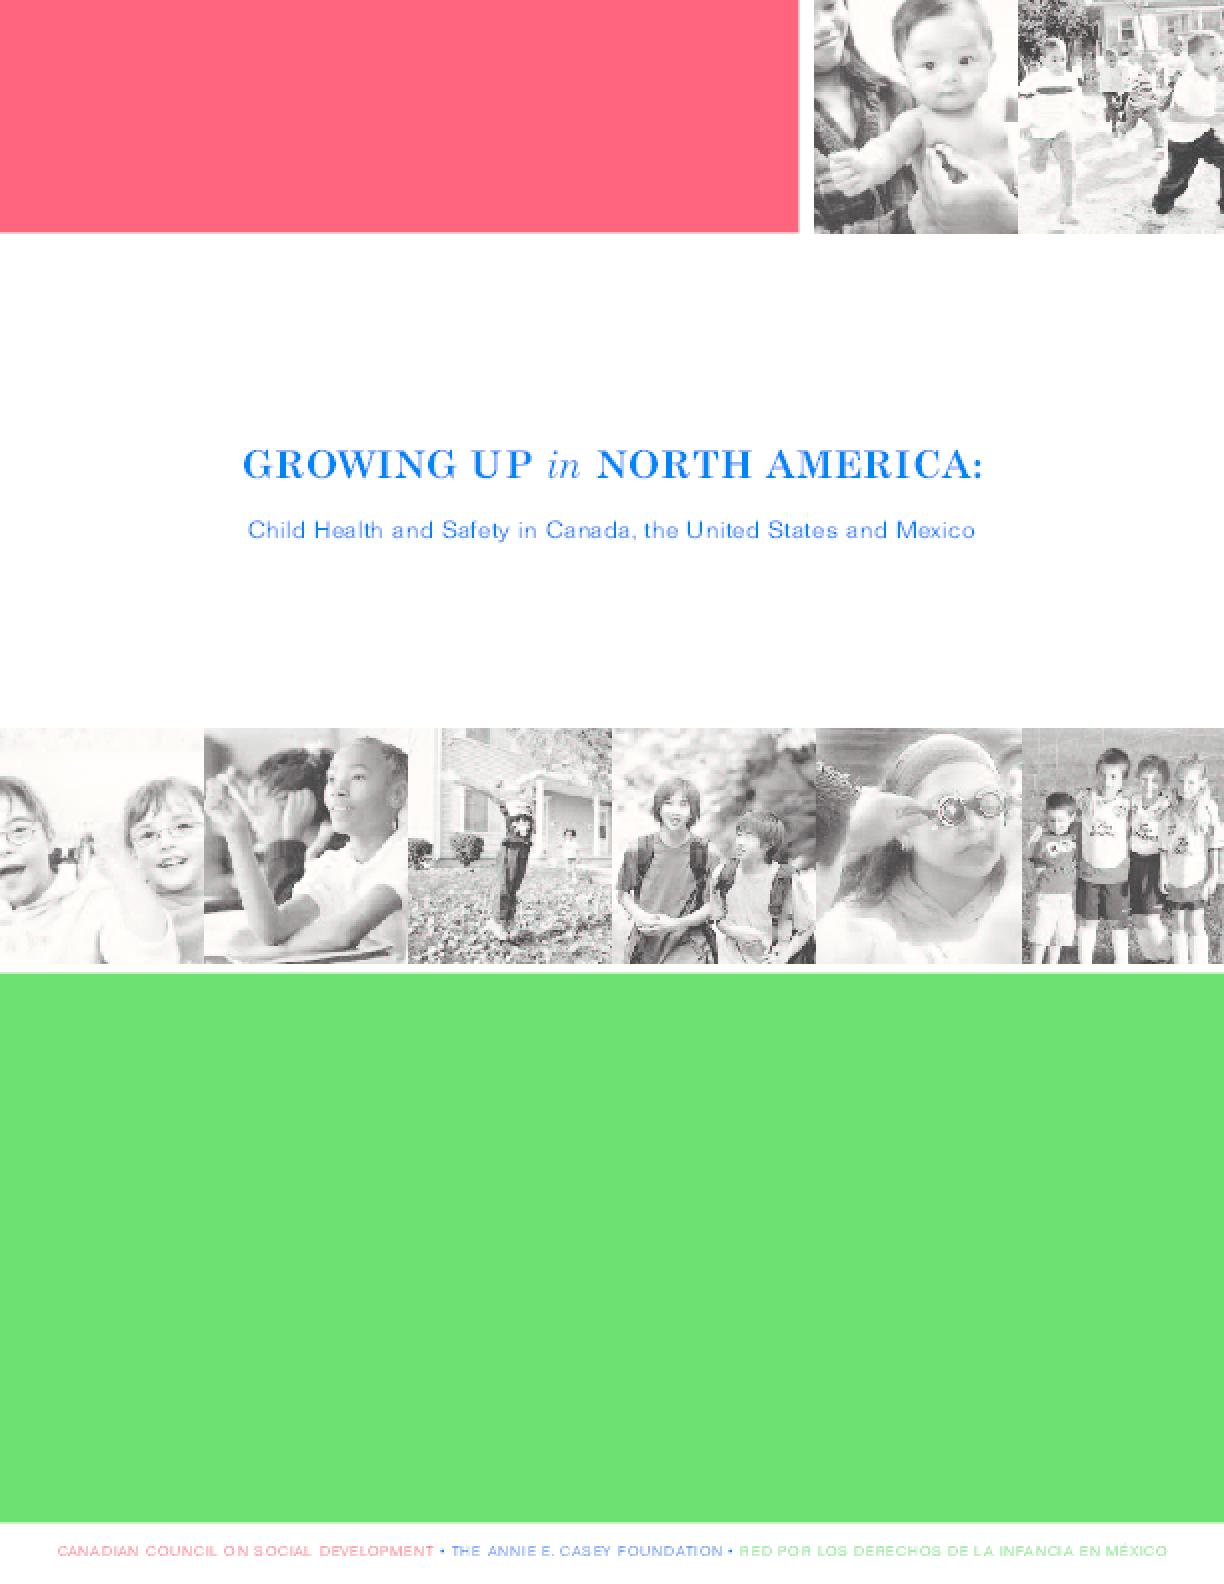 Growing Up in North America: Child Health and Safety in Canada, the United States, and Mexico